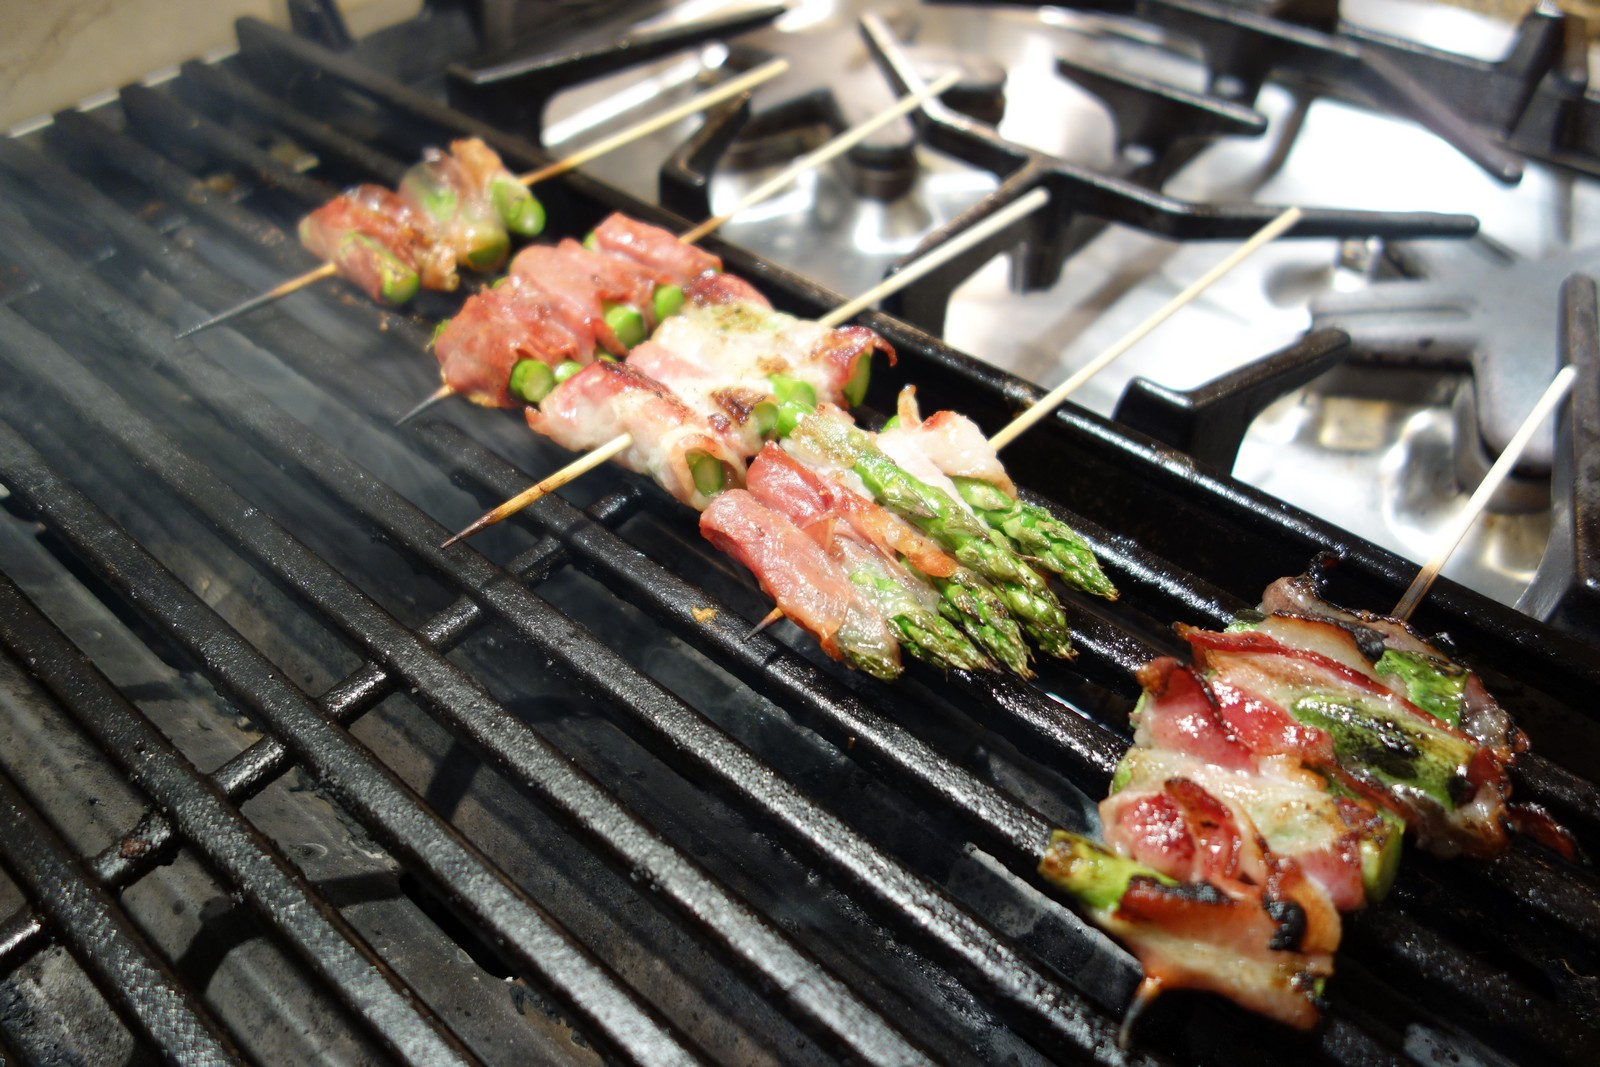 Grill over medium-high or high heat. Leave the ends of the skewers hanging off the grill so you can use them to flip the asparagus.